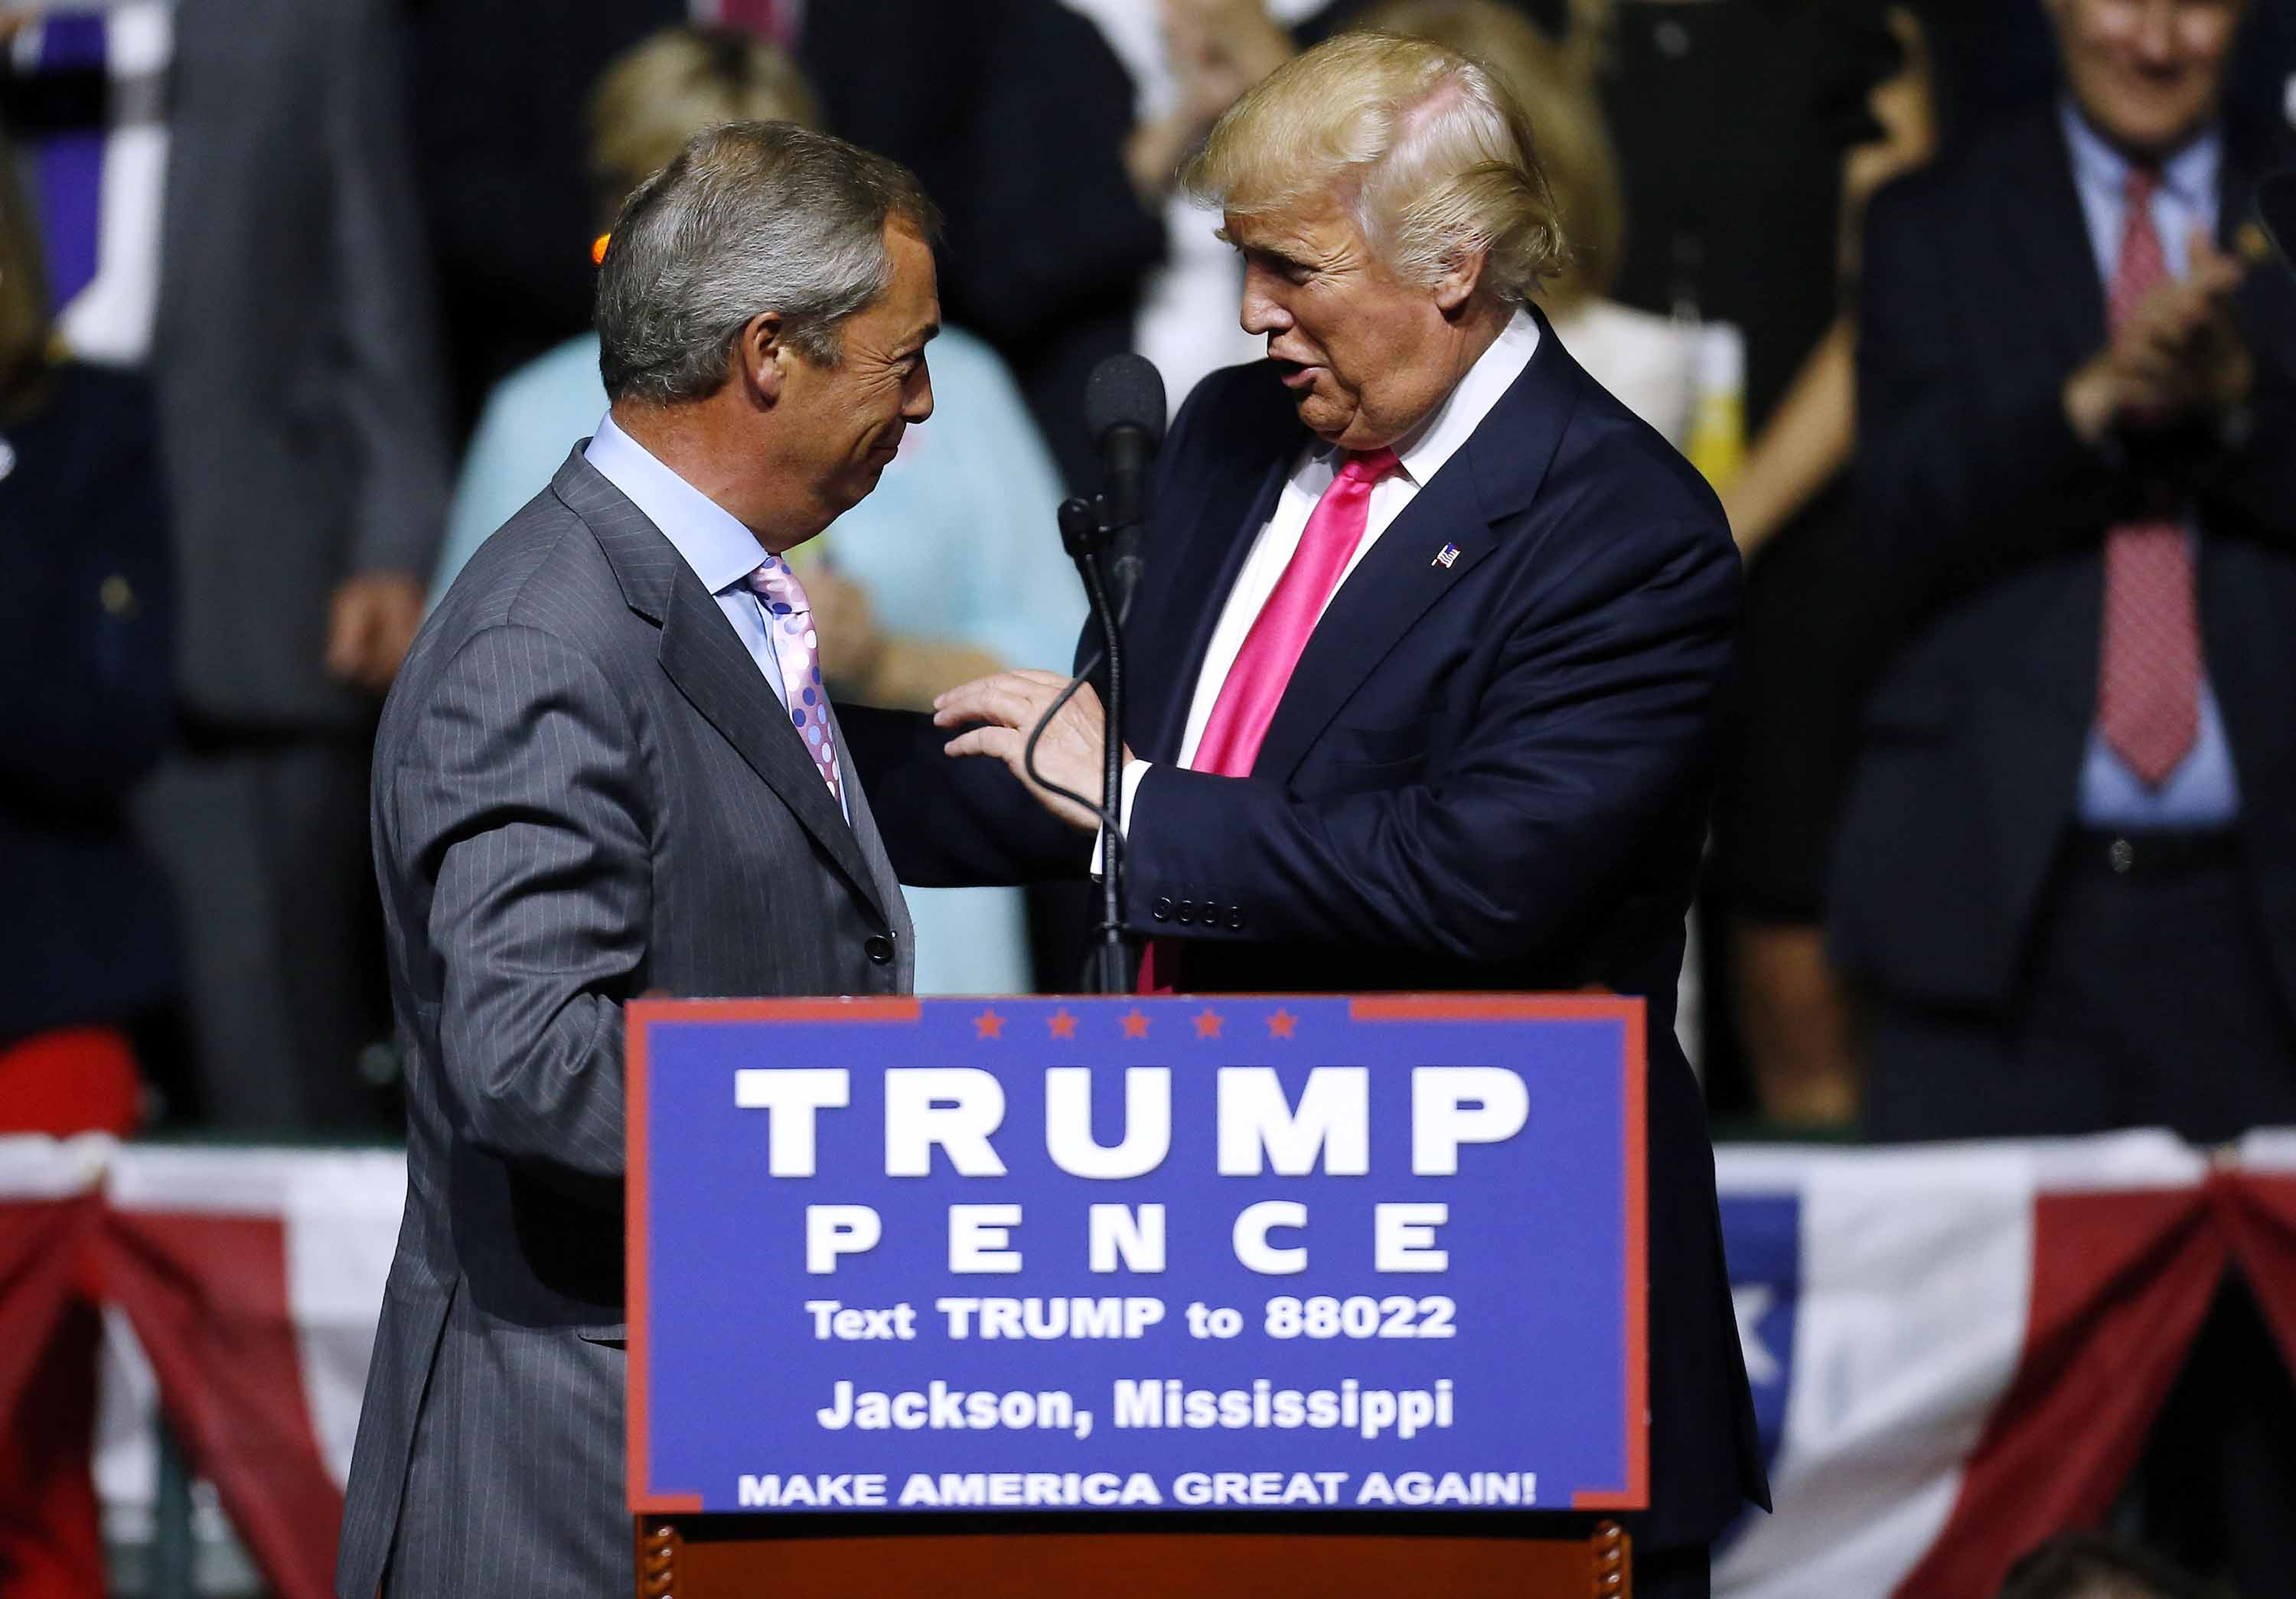 Then-Republican presidential nominee Donald Trump greets Nigel Farage during a campaign rally in Jackson, Mississippi in August 2016. Photo: Jonathan Bachman/Getty Images